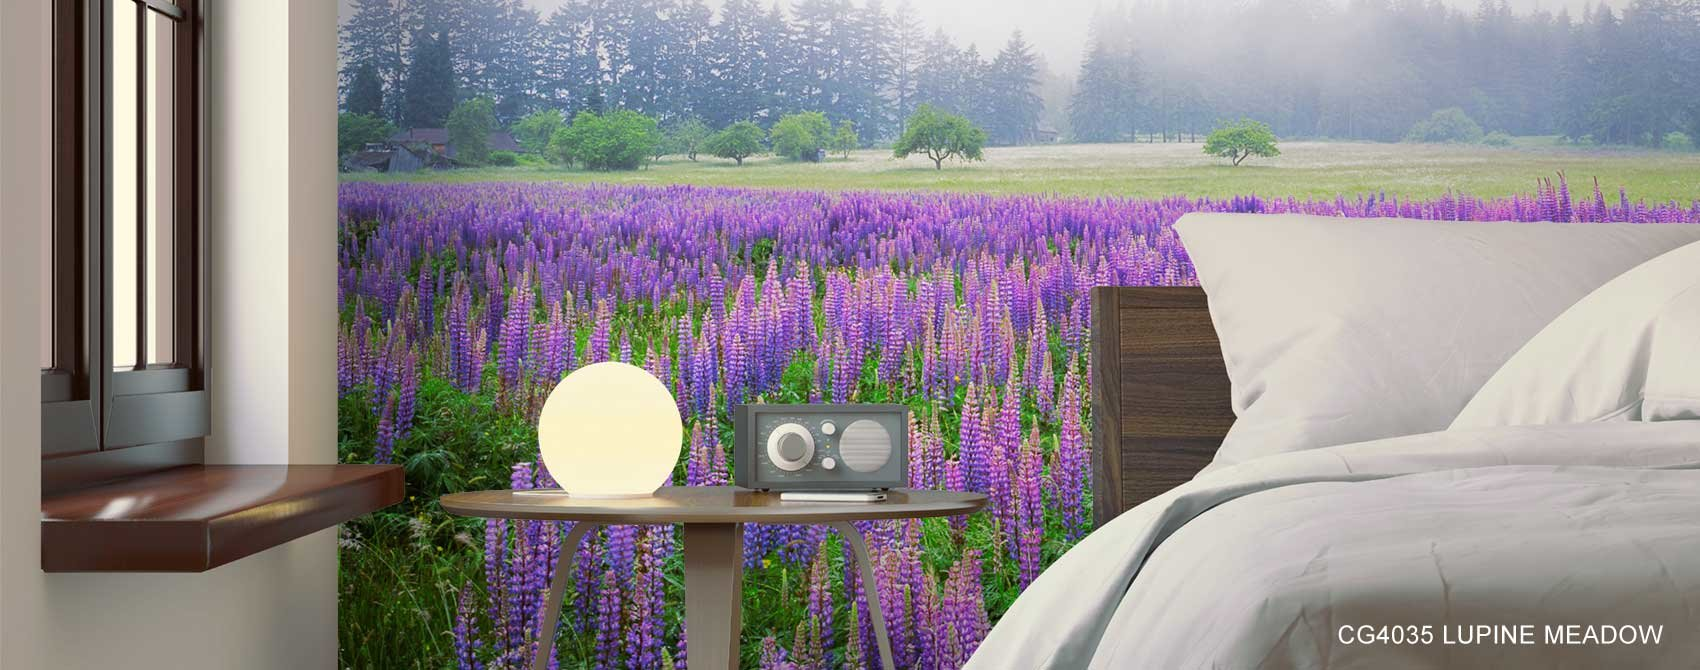 Lupine Meadow Wallpaper Mural